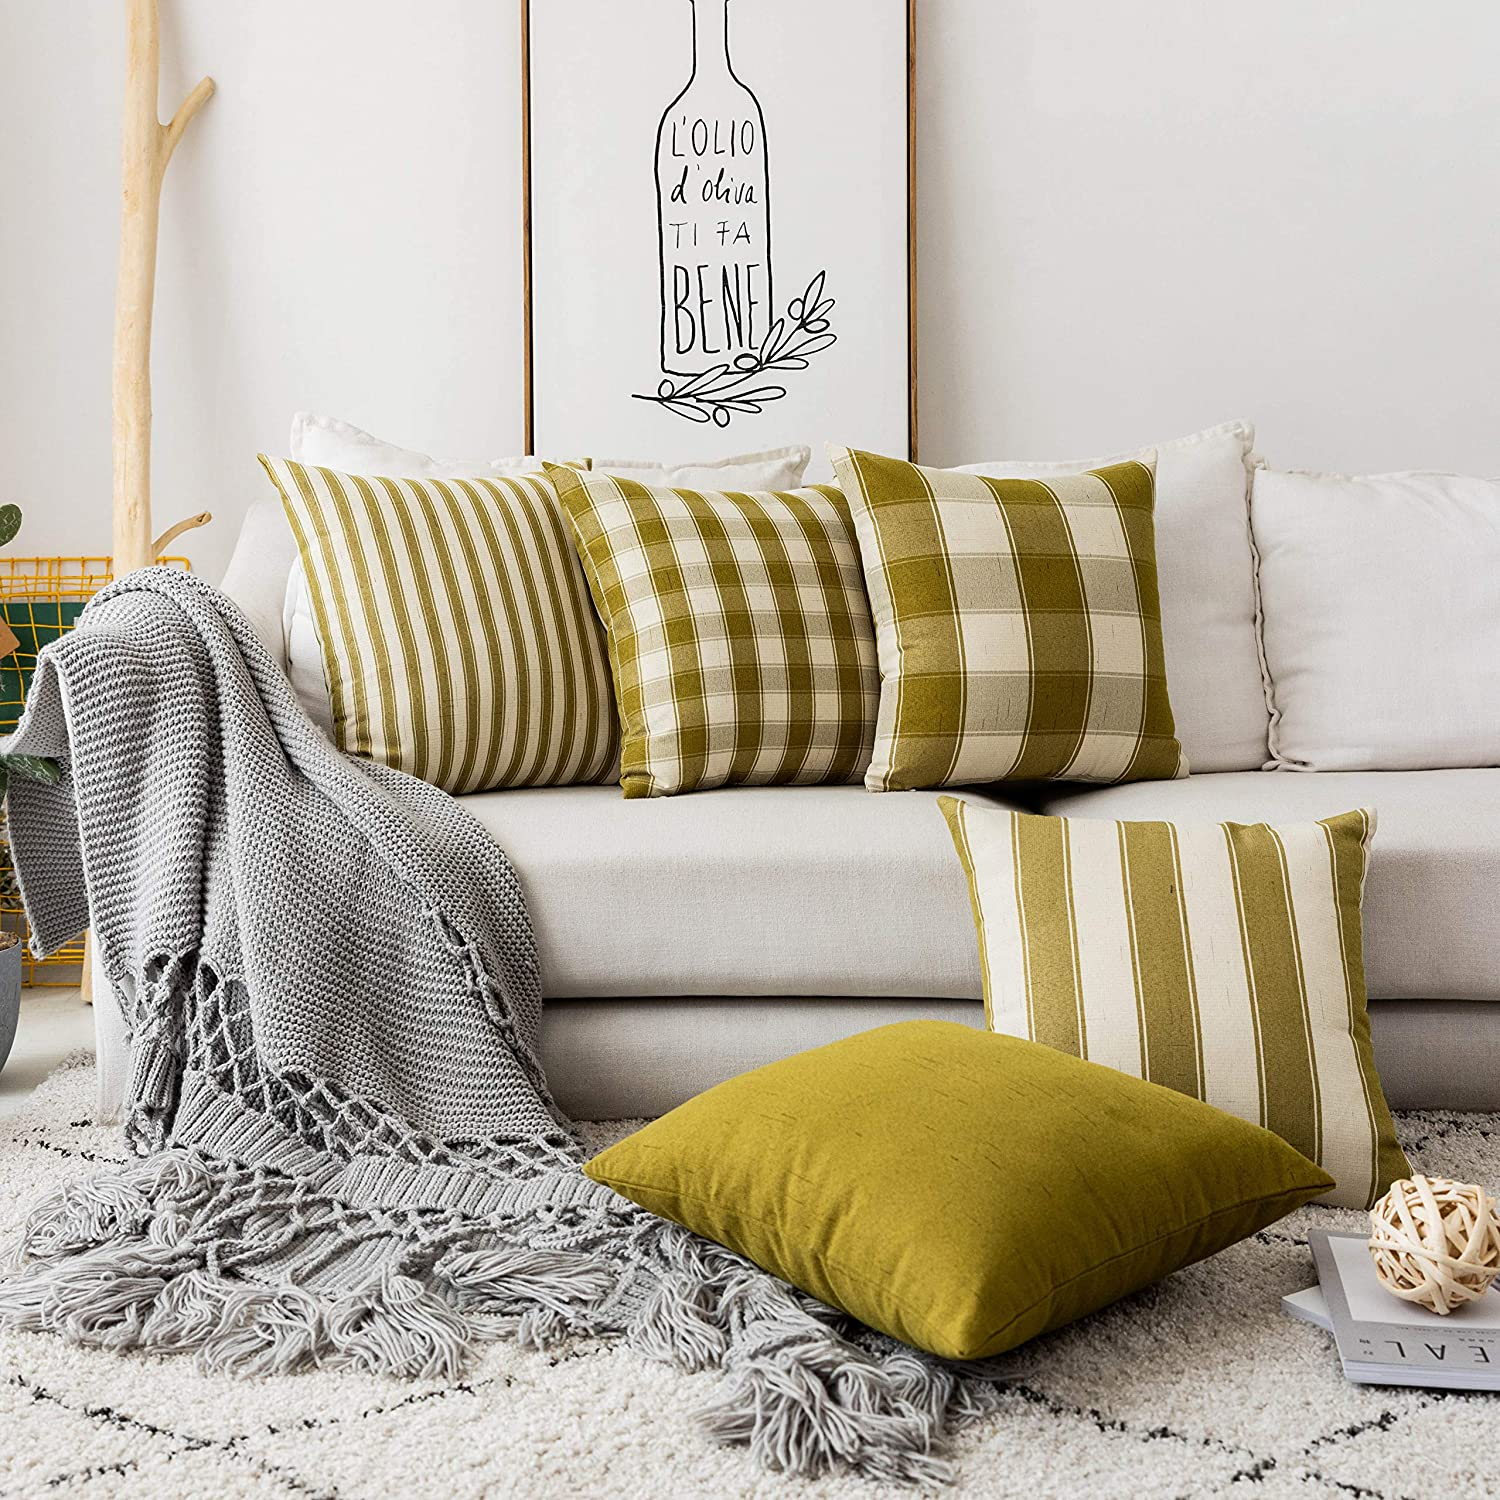 Home Brilliant Decorations Throw Pillows Cover Patterned Pillowcases Striped Farmhouse Linen Cushion Covers Set of 5 Green Pillow Covers for Sofa, Golden Olive, 18 x 18 inch, 45cm